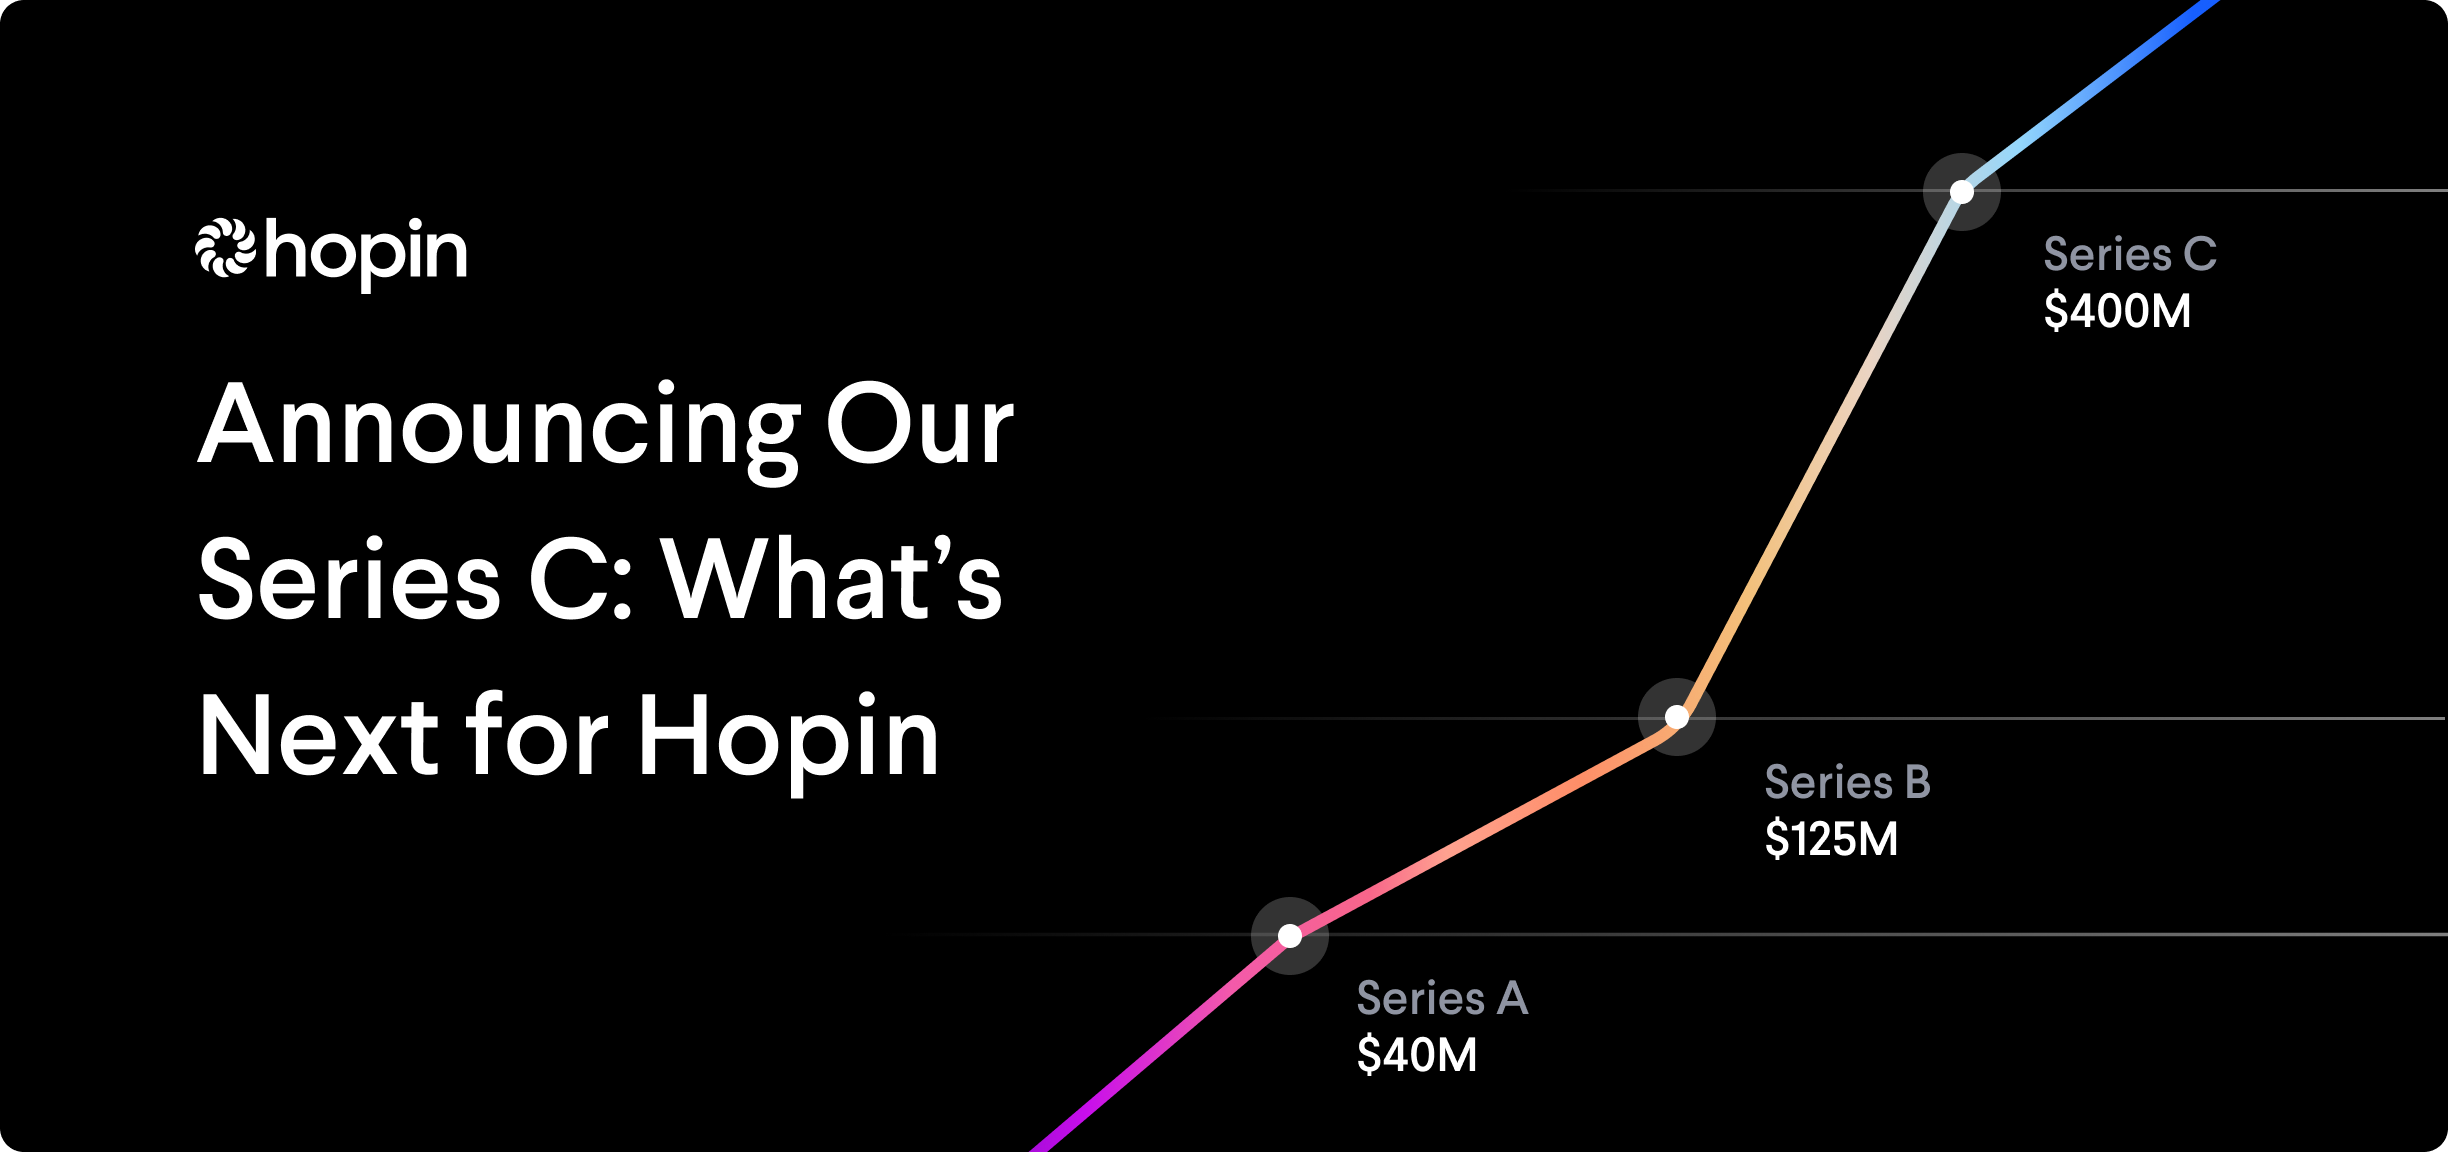 We've closed our Series C of $400M, co-led by Andreessen Horowitz and General Catalyst, with IVP. Here's what this news means for Hopin's future.